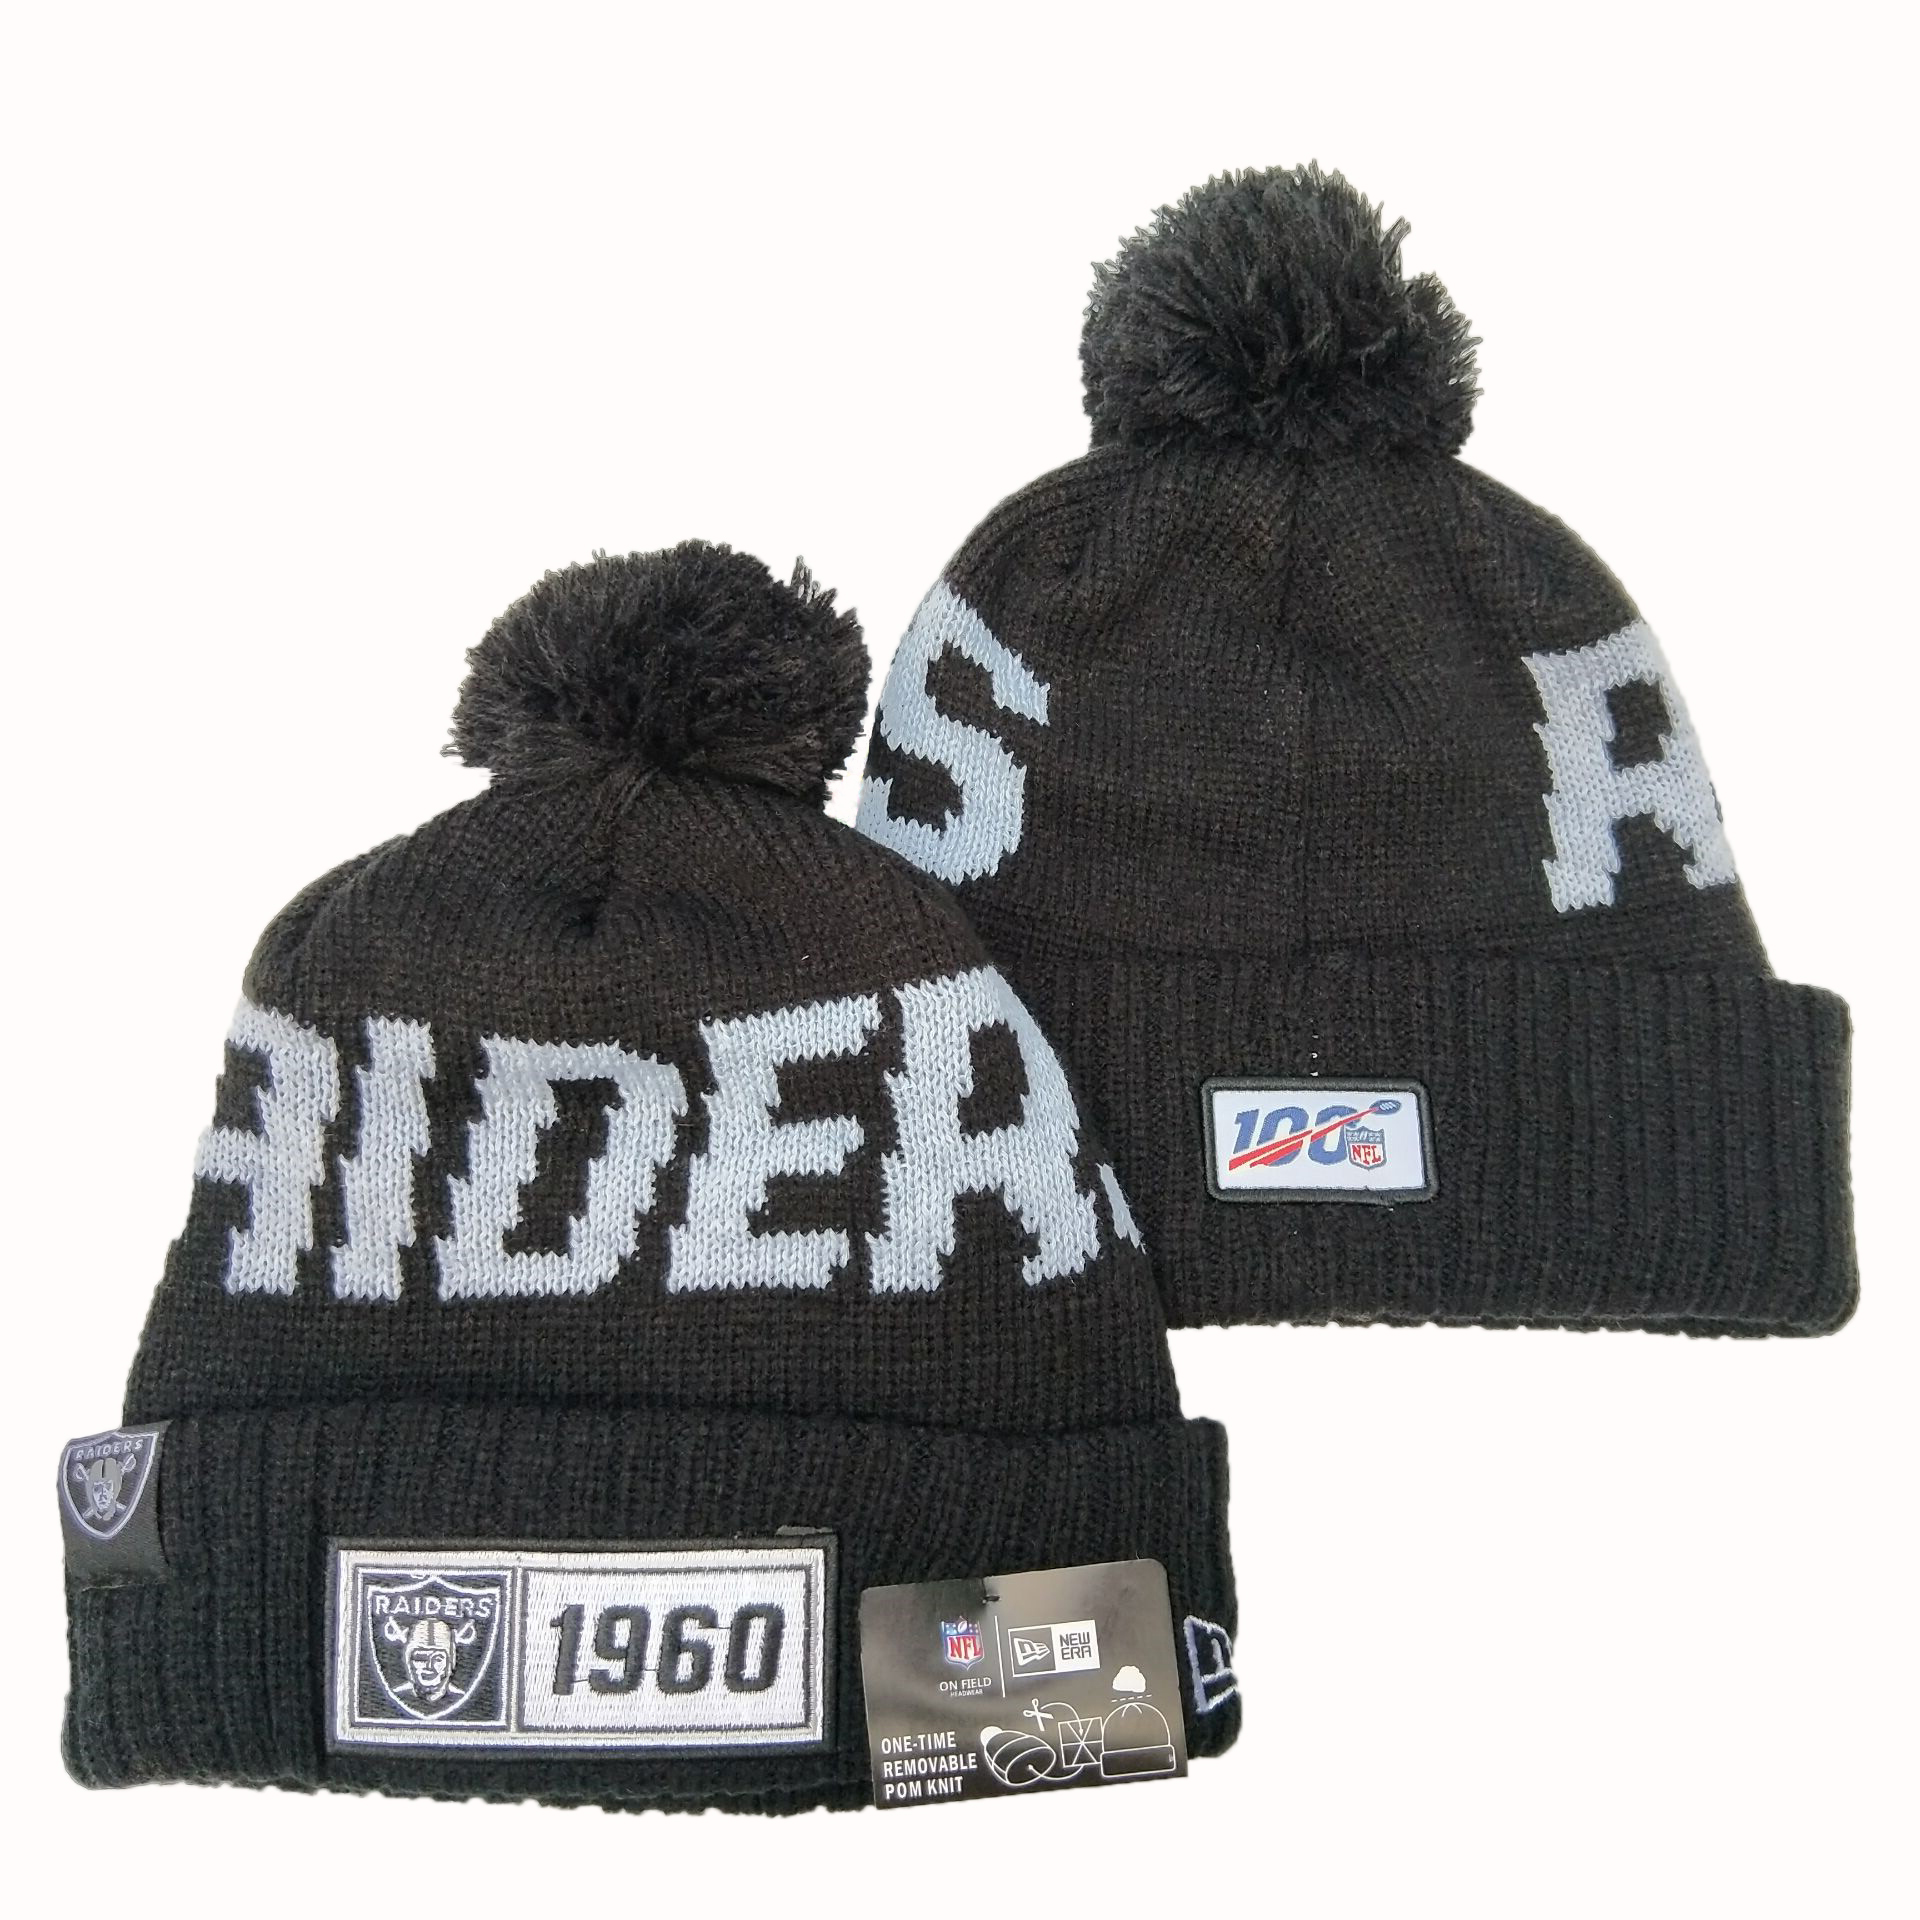 Las Vegas Raiders Knit Hats 064